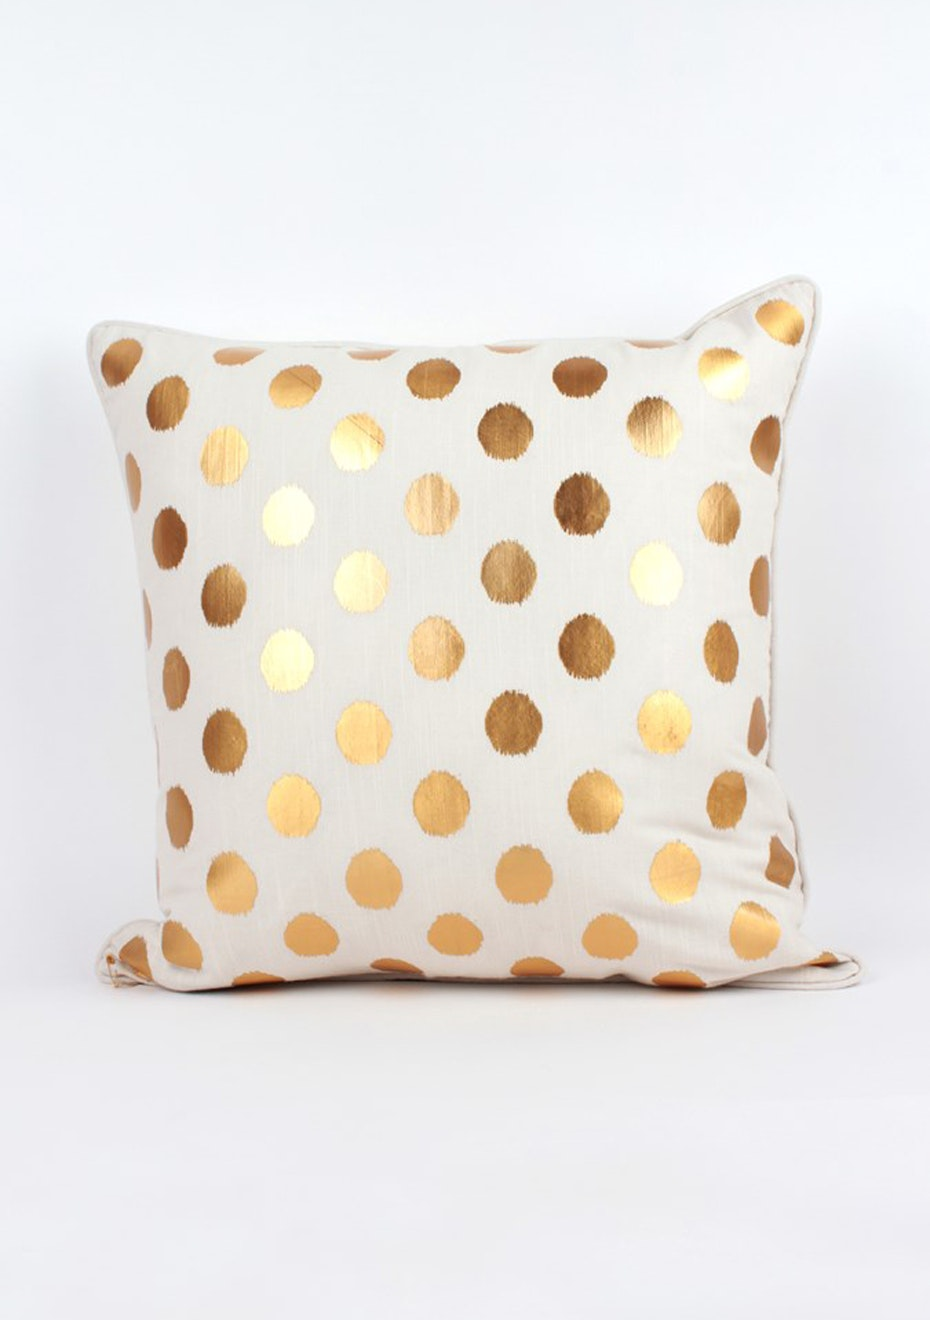 Nest - Golden Rain Cushion Cover